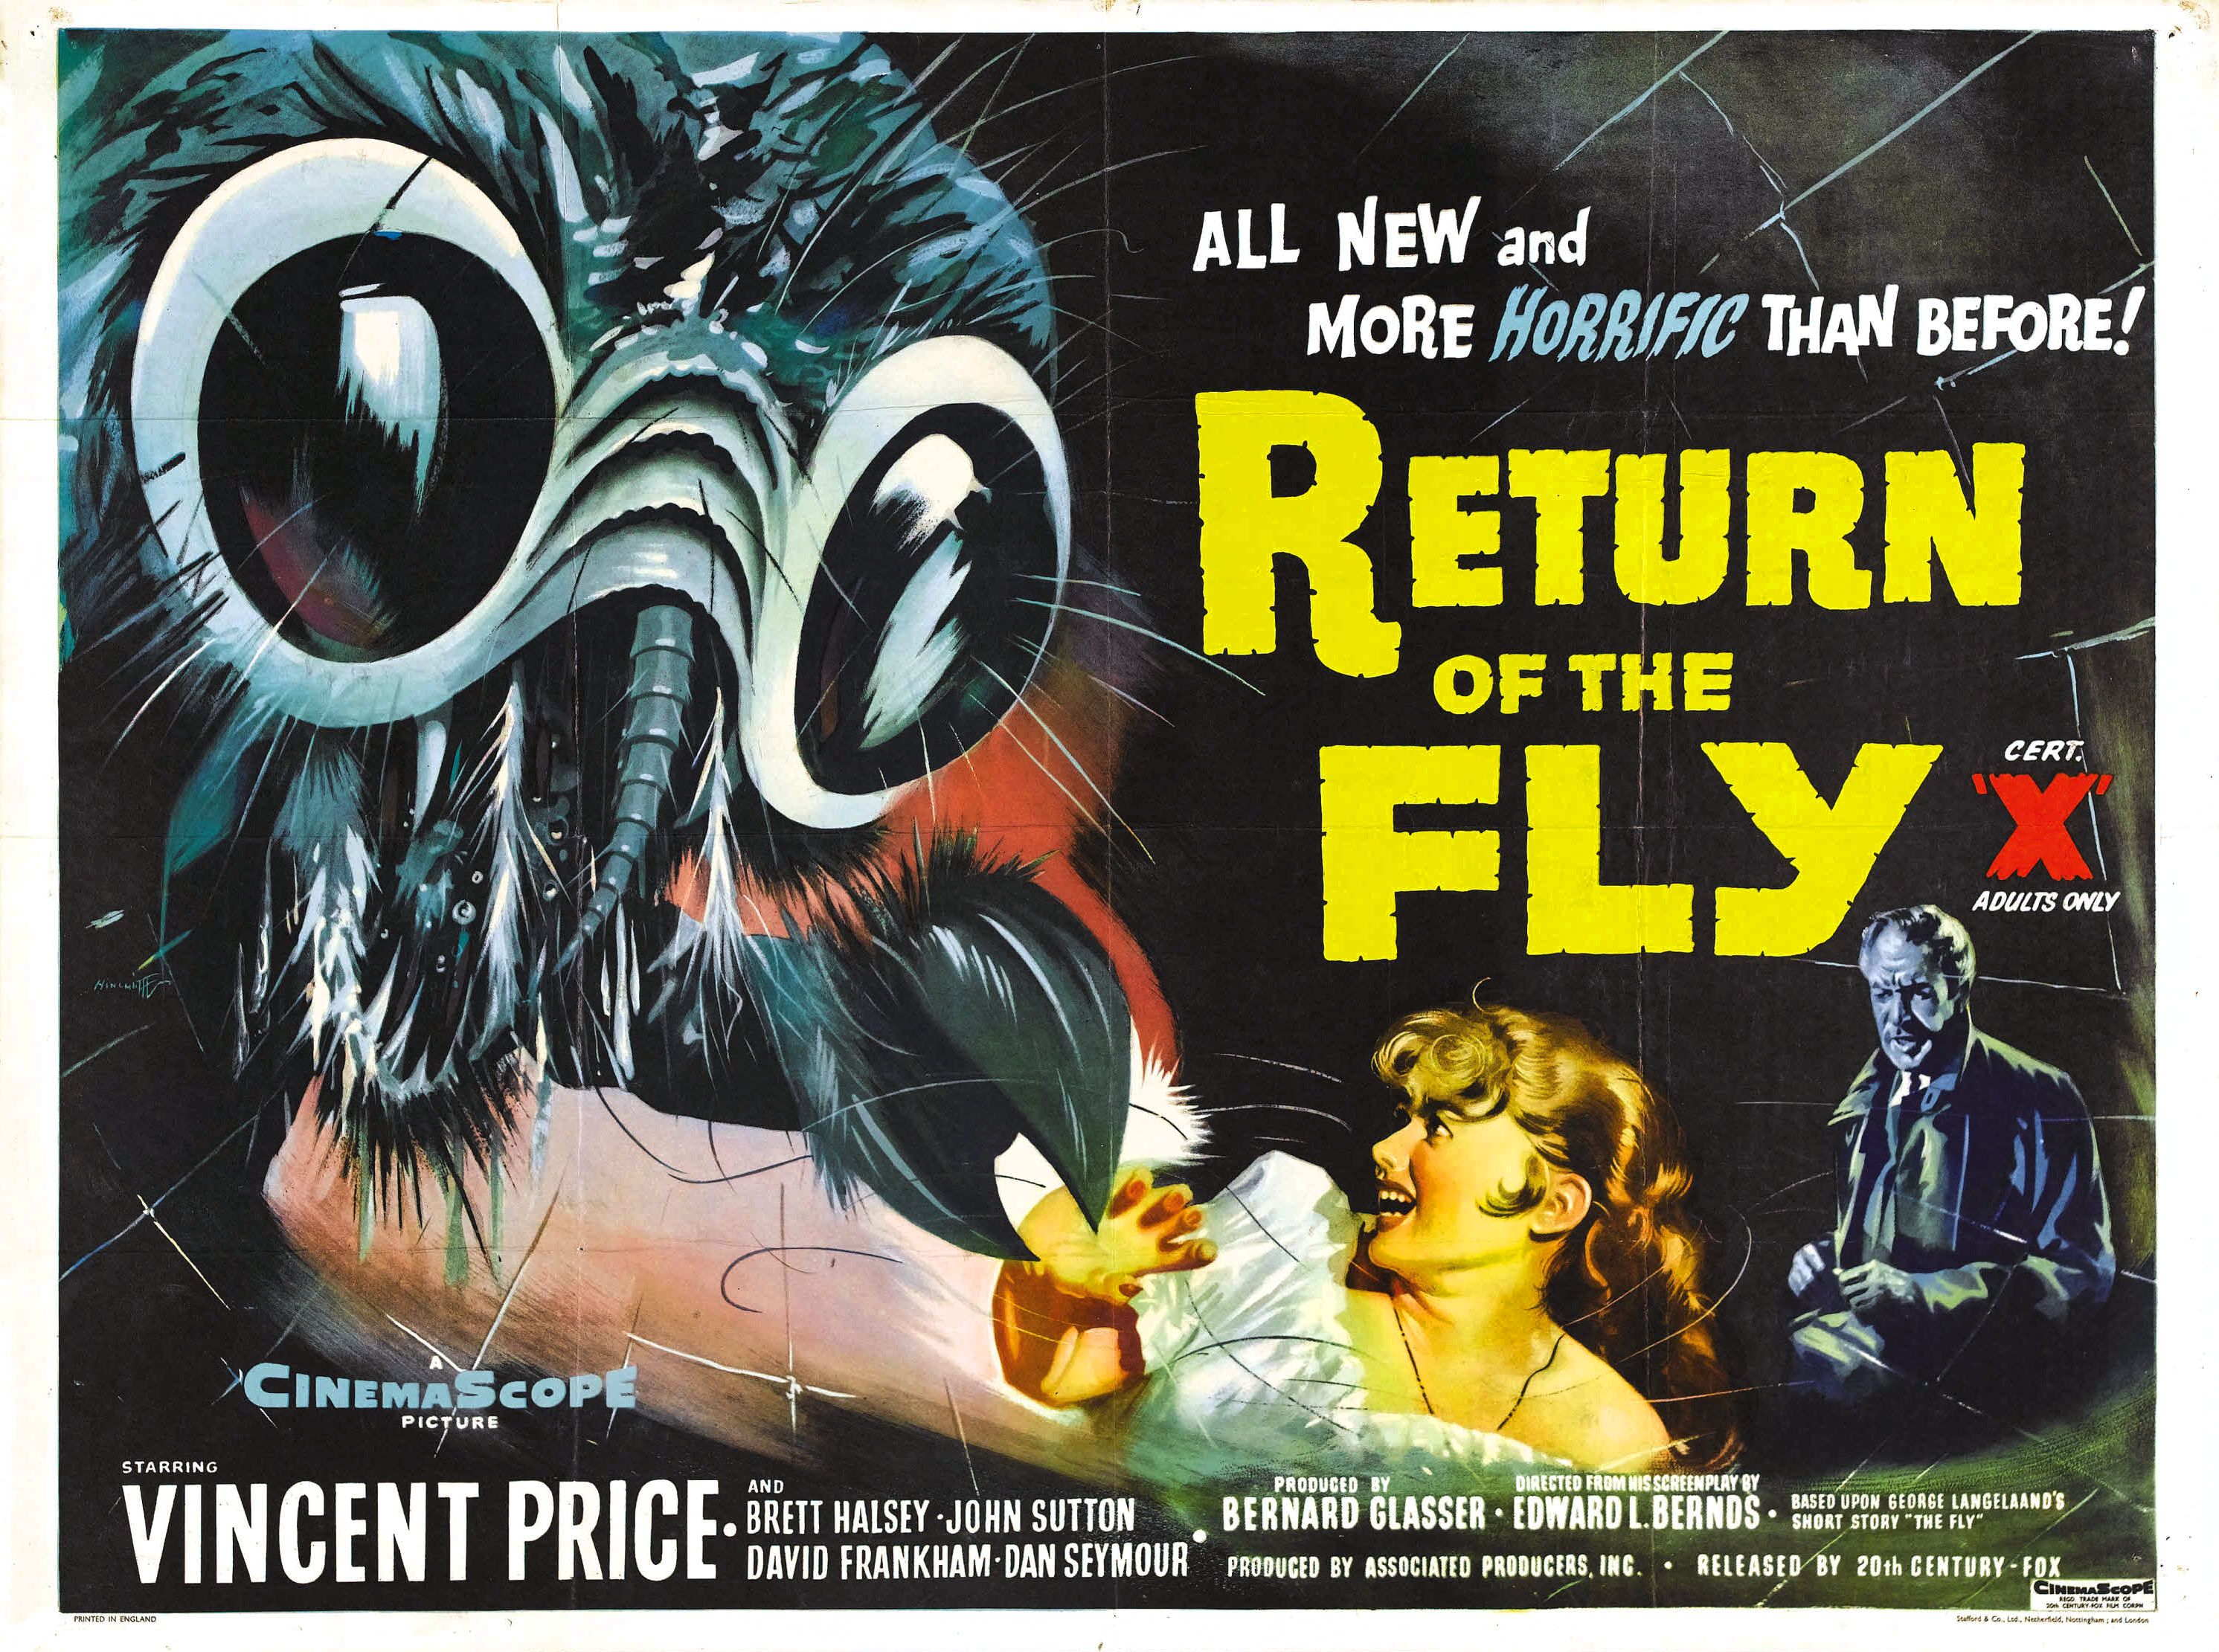 return_of_fly_poster_03mondozillaTHE-FLY-RETURN-OF-THE-FLY-UK-DOUBLE-FEATUREReturnOfTheFly2535840_10201899171231604_232819984_nthe fly dvd collectionVincent Price Collection II Blu-ray!Bkmcklg!Wk~$(KGrHqUOKj0EsneBs(rRBLYOM35P(!~~_3return of the flyreturn_of_fly_poster_04return-of-the-fly-movie-poster-1959-1020207100Jesse_James_drivein_Jul1959return of the fly UK DVDthe fly + return of the fly fox DVDReturn-of-the-Flly-DVDreturn of the fly posterreturn of the fly figurineReturn-of-the-Fly-collectible-figureblood-feast-2000-maniacs-return-of-the-fly-starlite-drive-in-kannapolis-north-carolina-10-21-1966